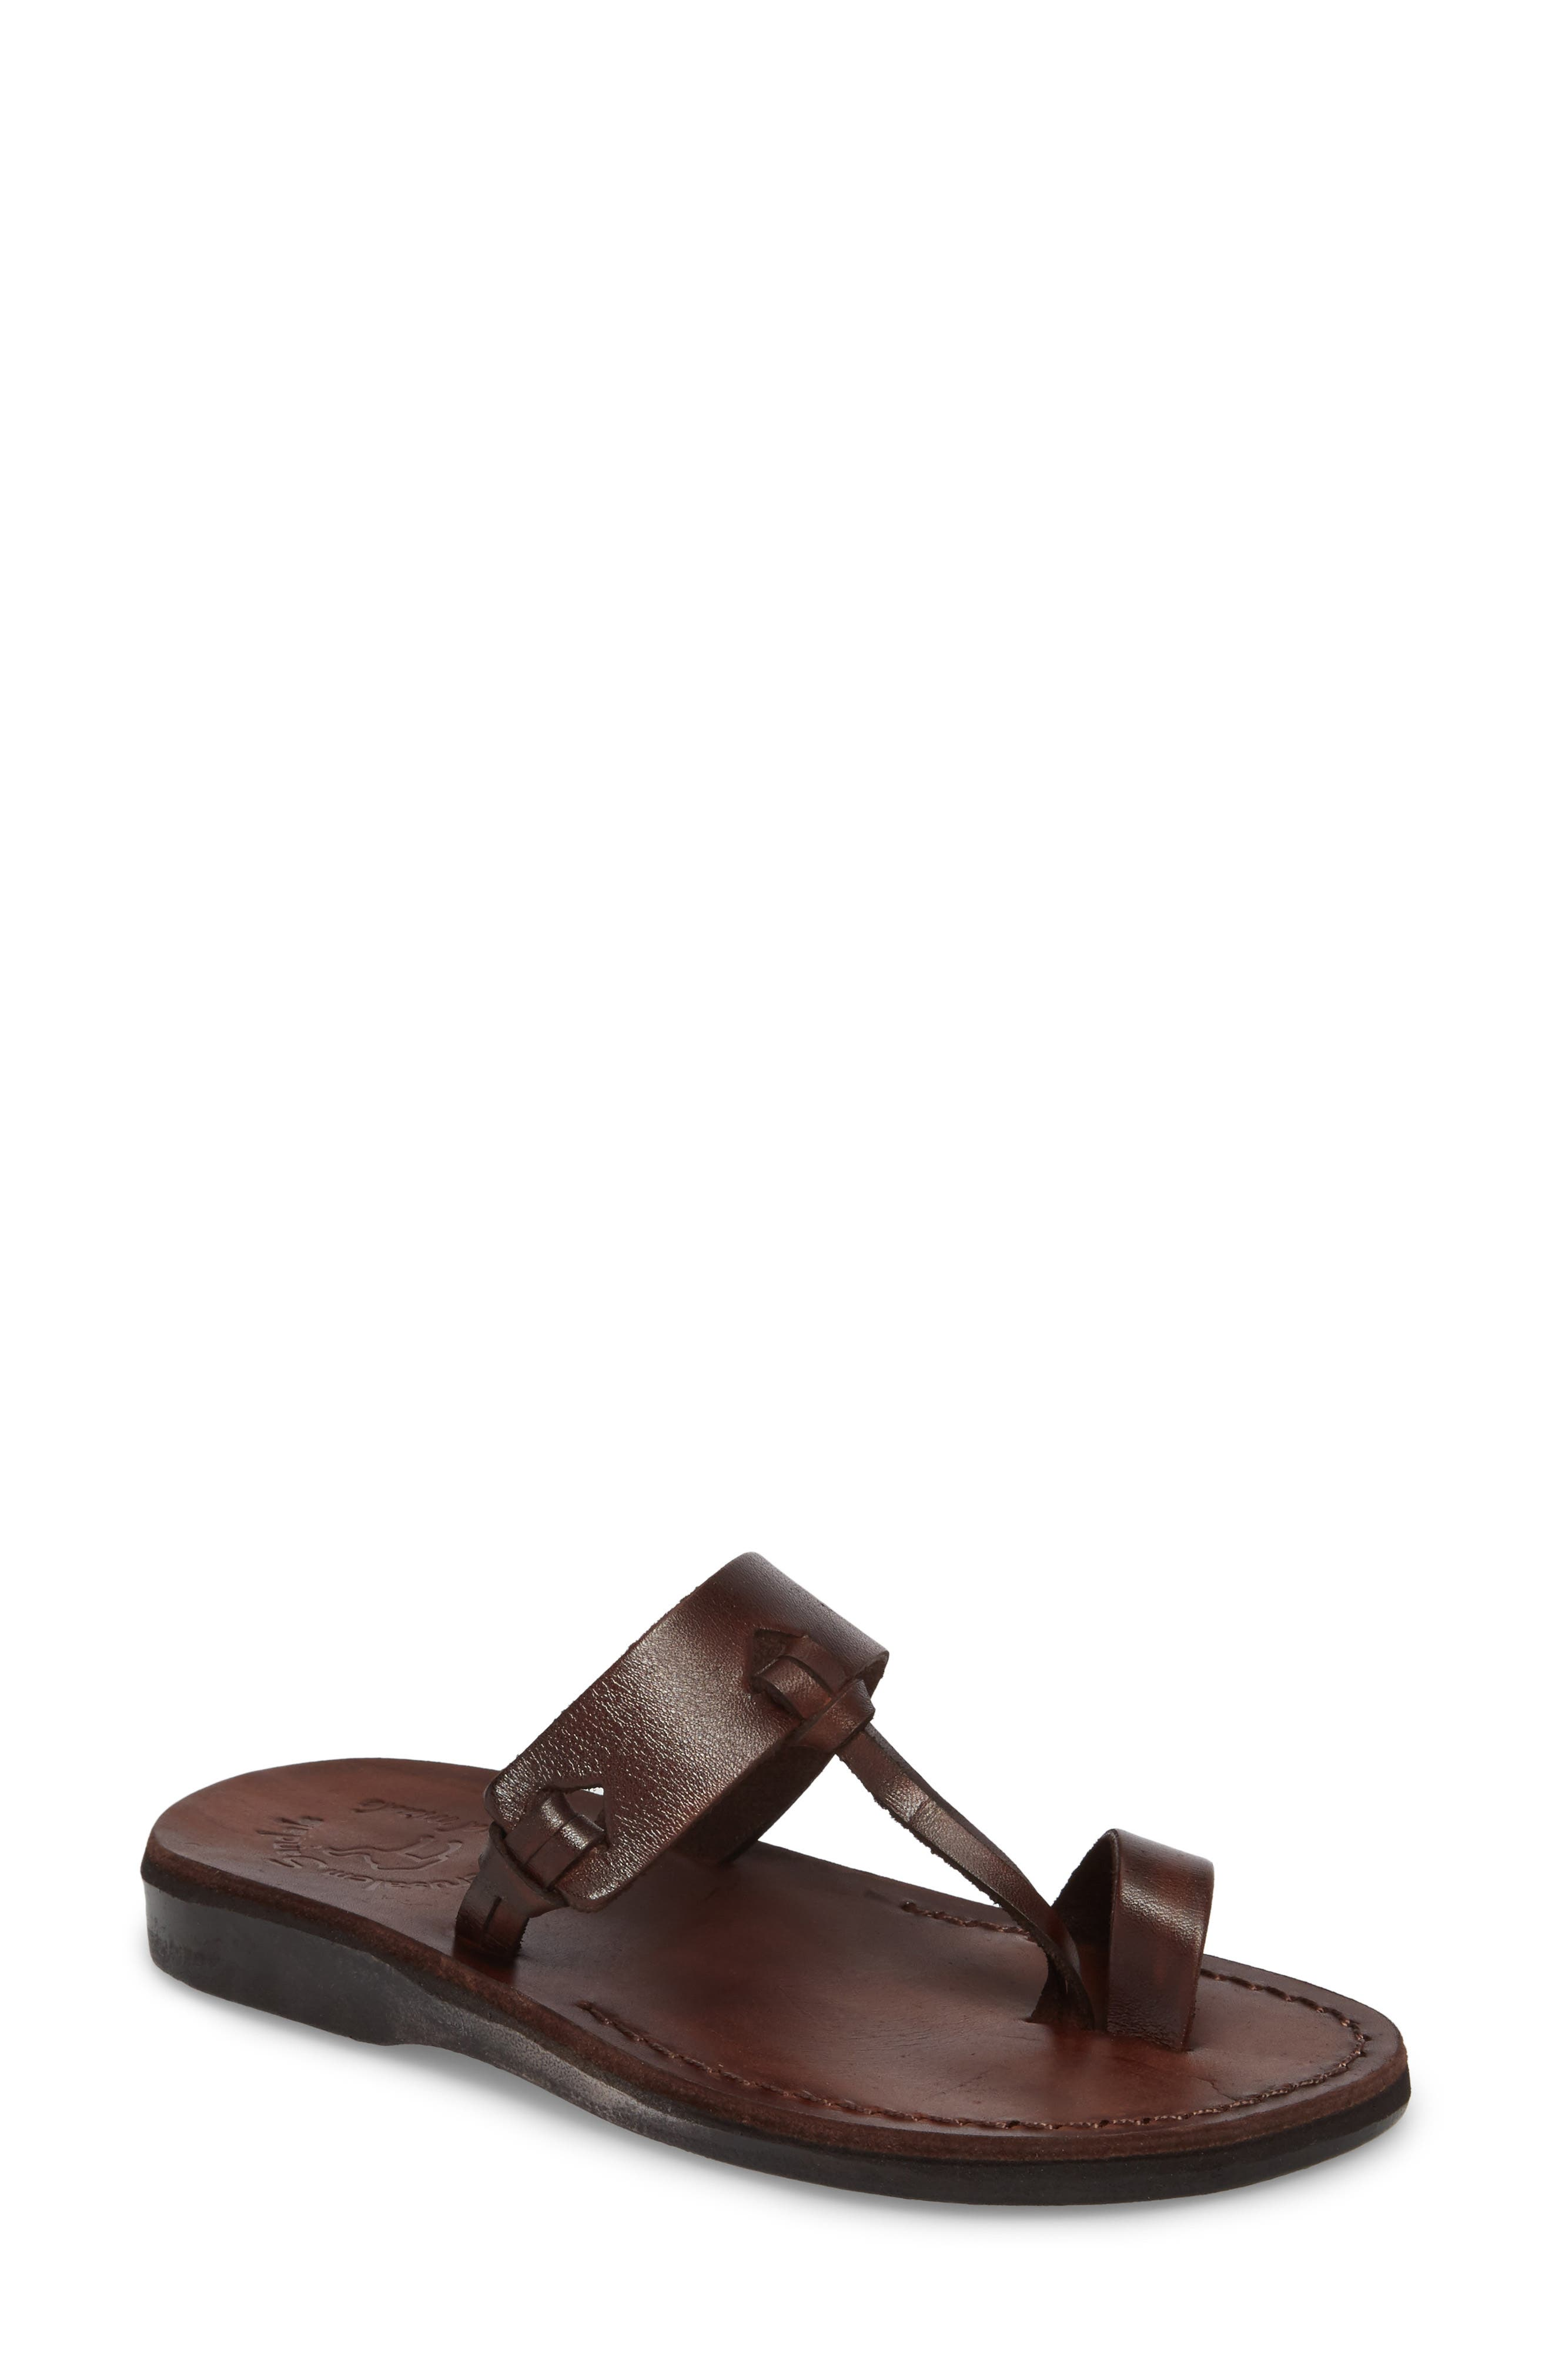 Sandals for Women On Sale, Platinum, Leather, 2017, 4 7.5 8.5 Anna F.